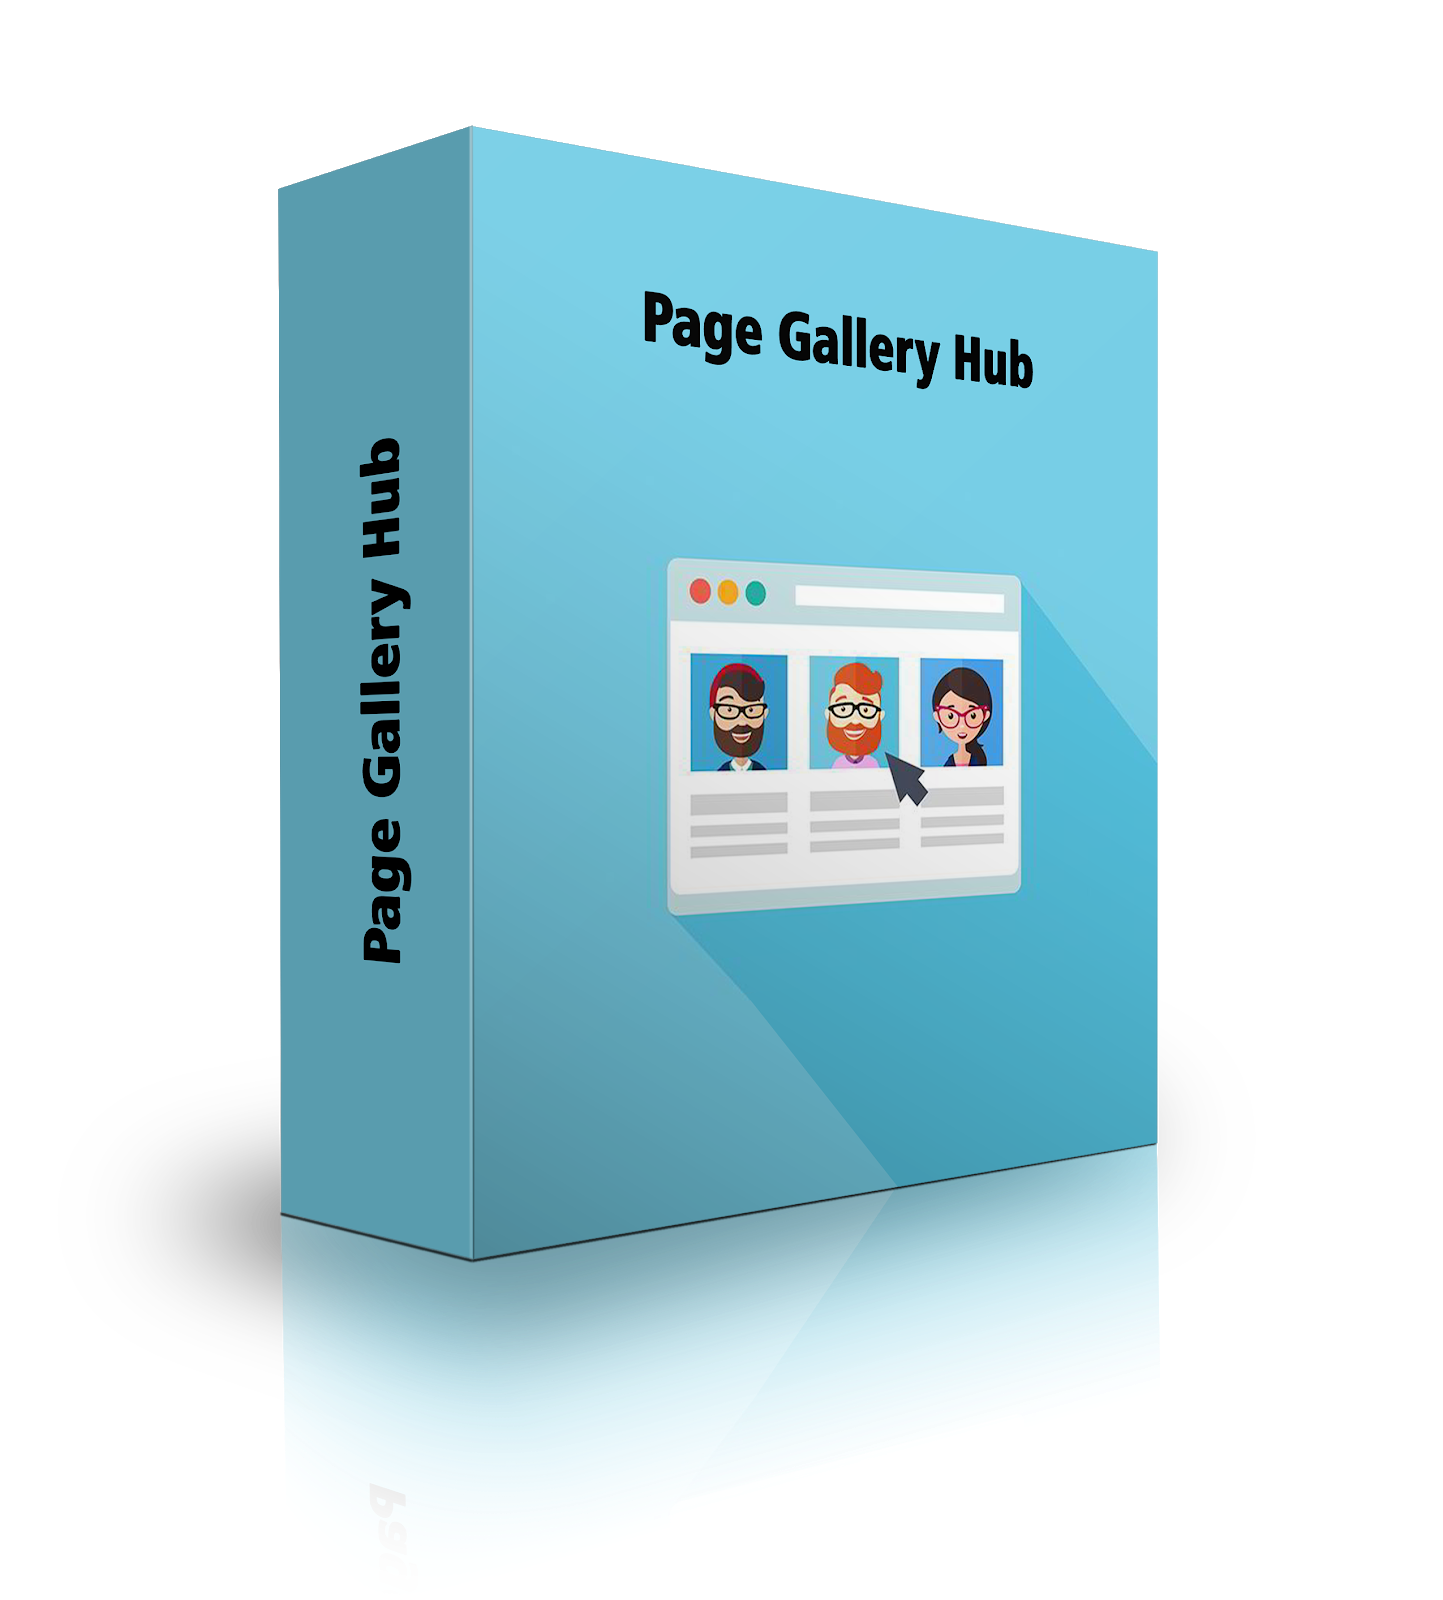 Page Gallery Hub